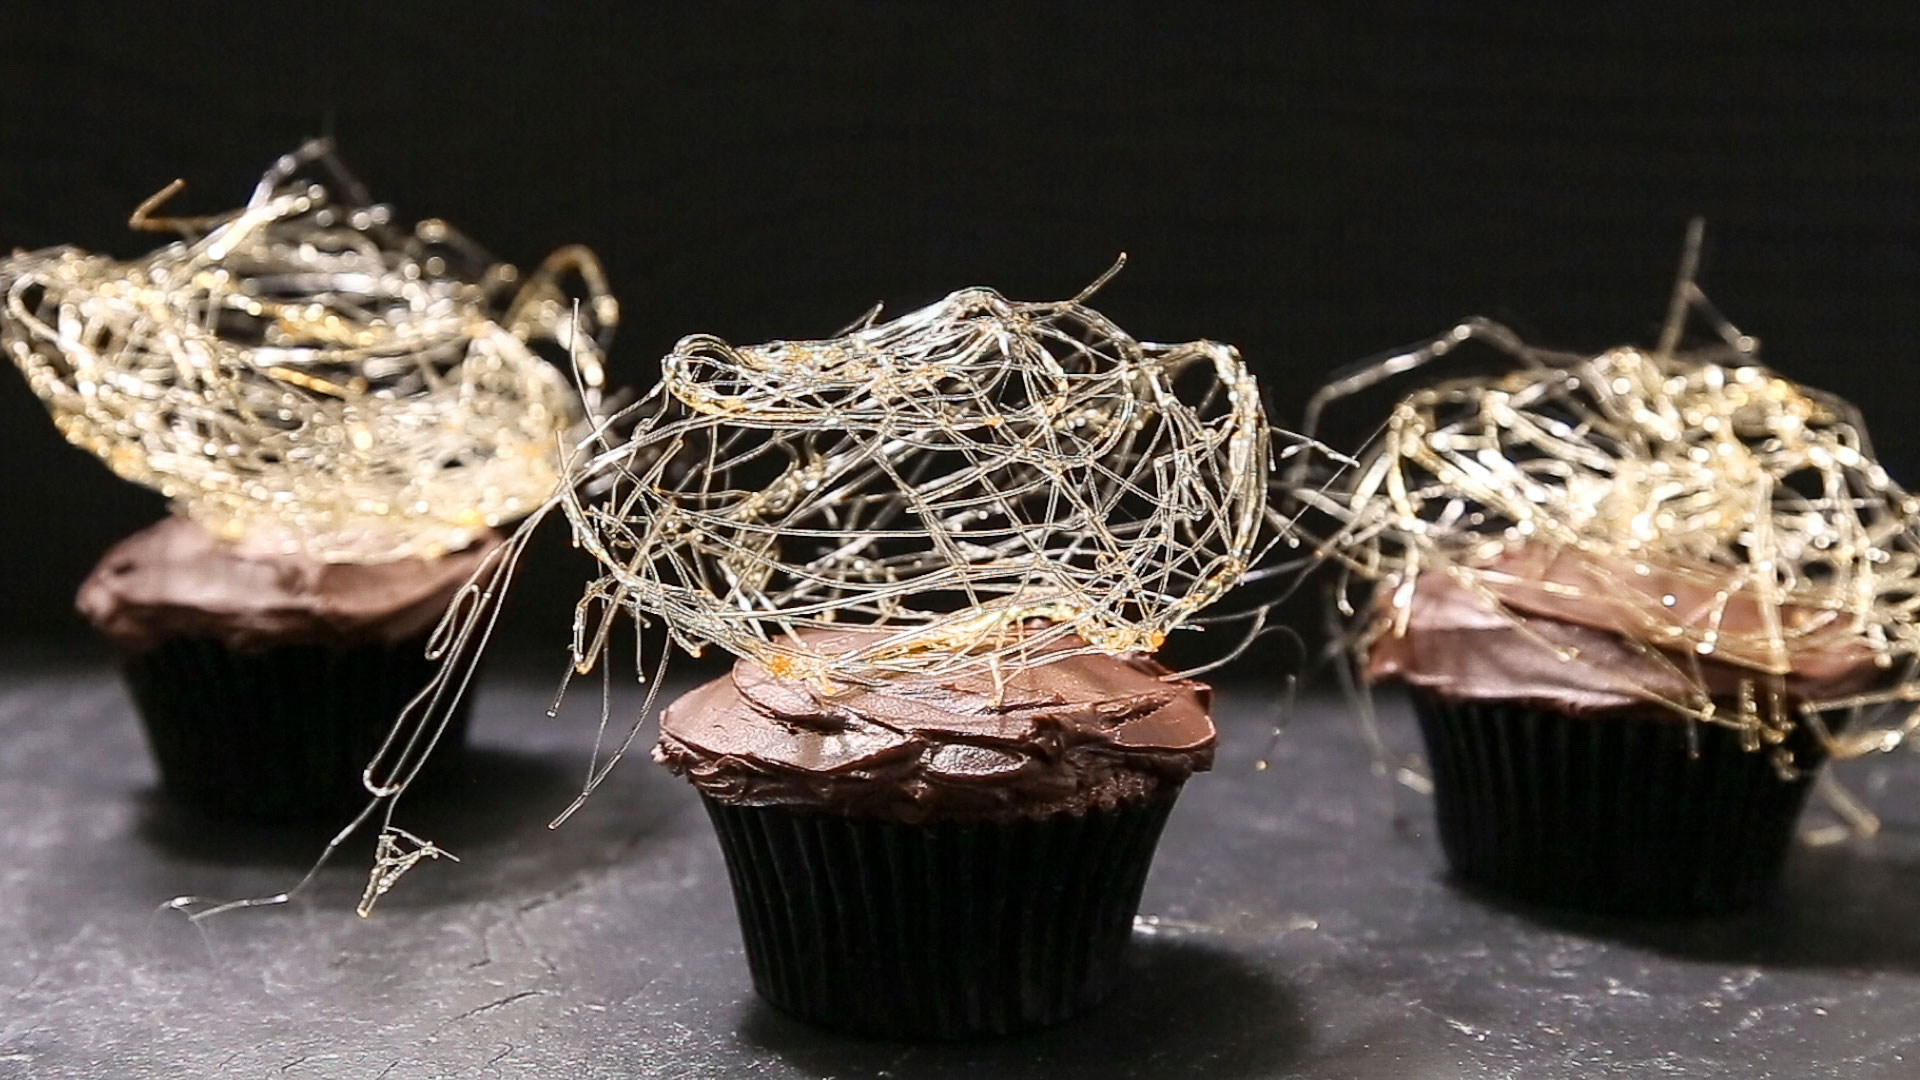 How to Make Spun-Sugar Cobwebs